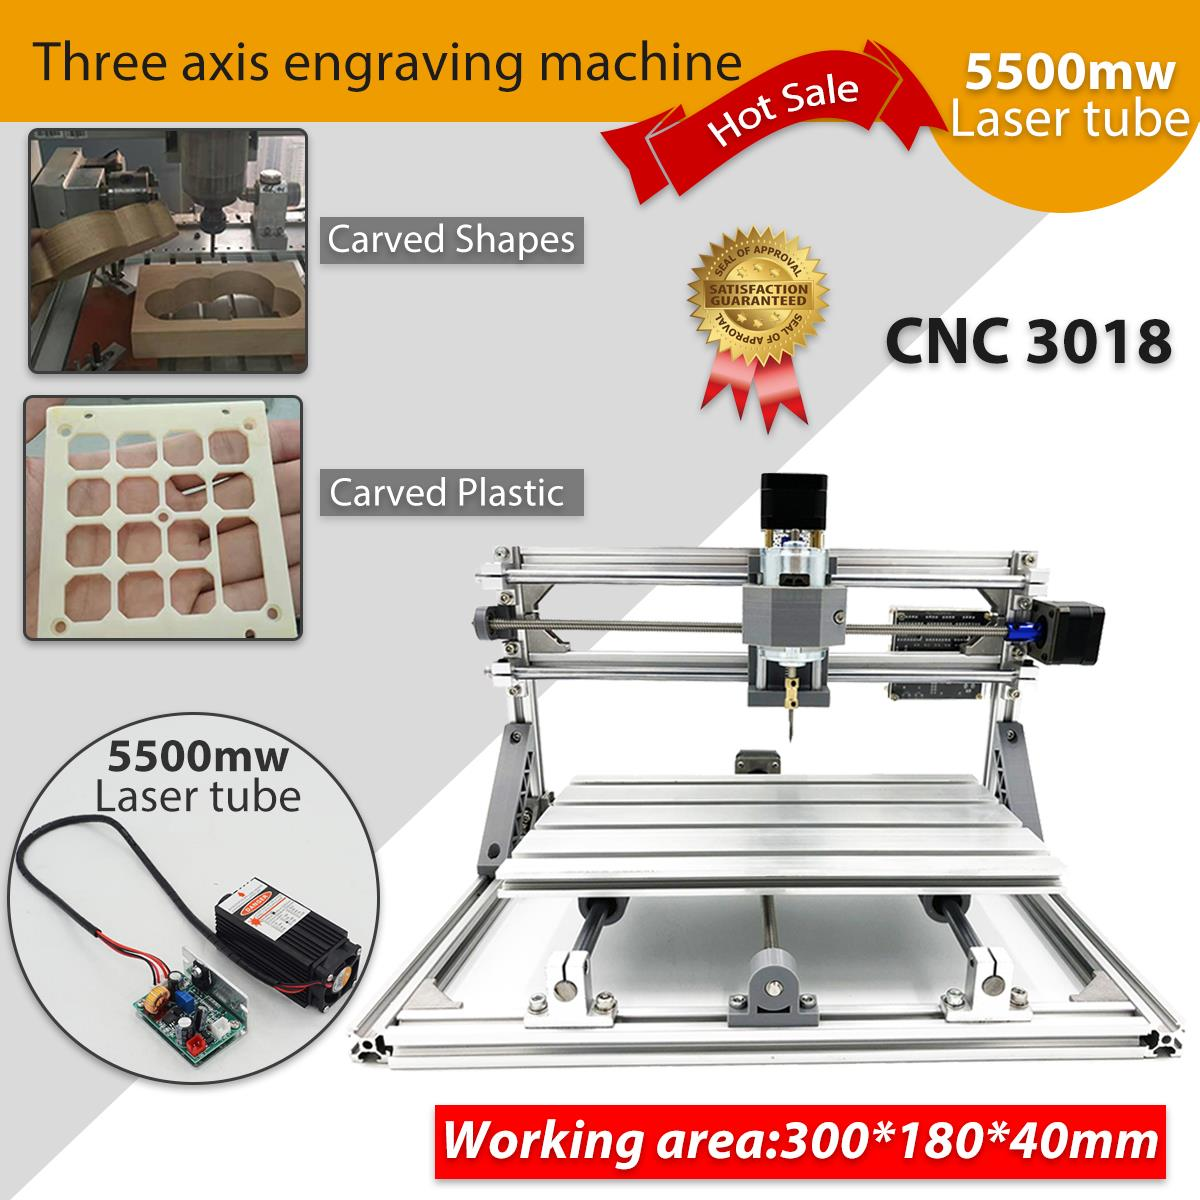 CNC 3018 Mini Engraving Machine 5500mw/2500mw Laser PCB Milling Machine Wood Carving Machine GRBL Control CNC Router Kit